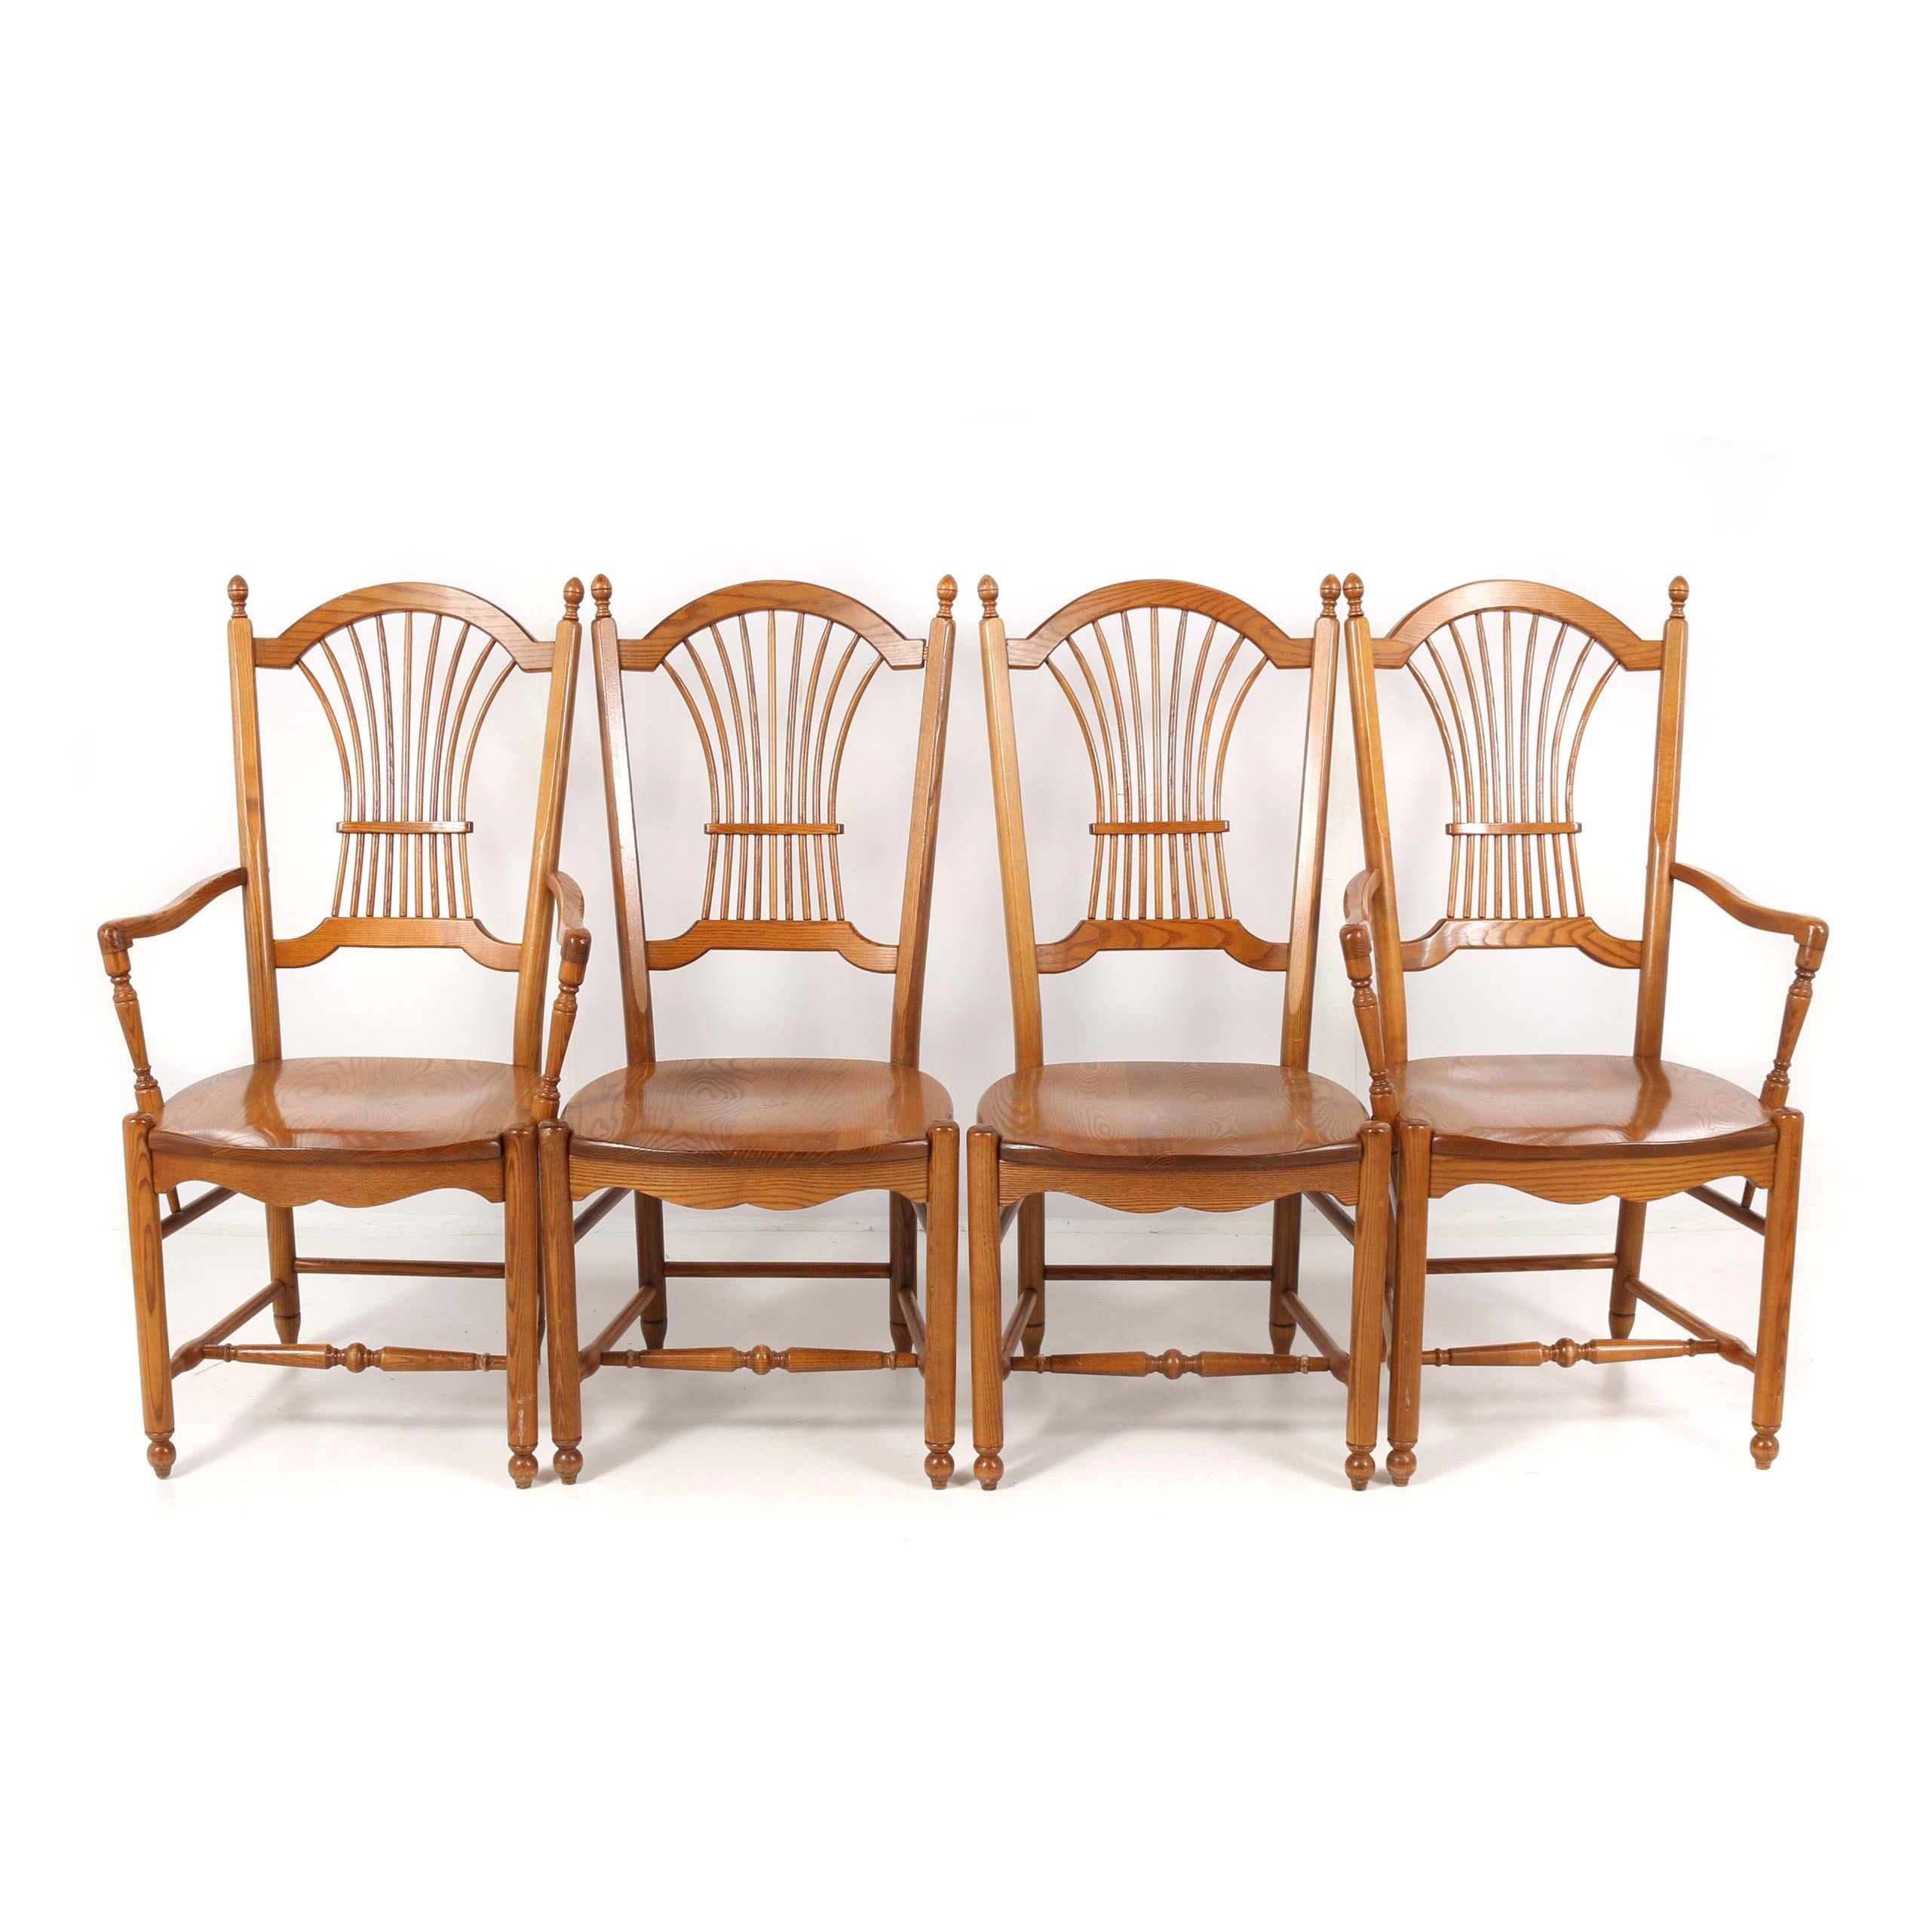 Oak Dining Chairs by S. Bent & Bros., 21st Century